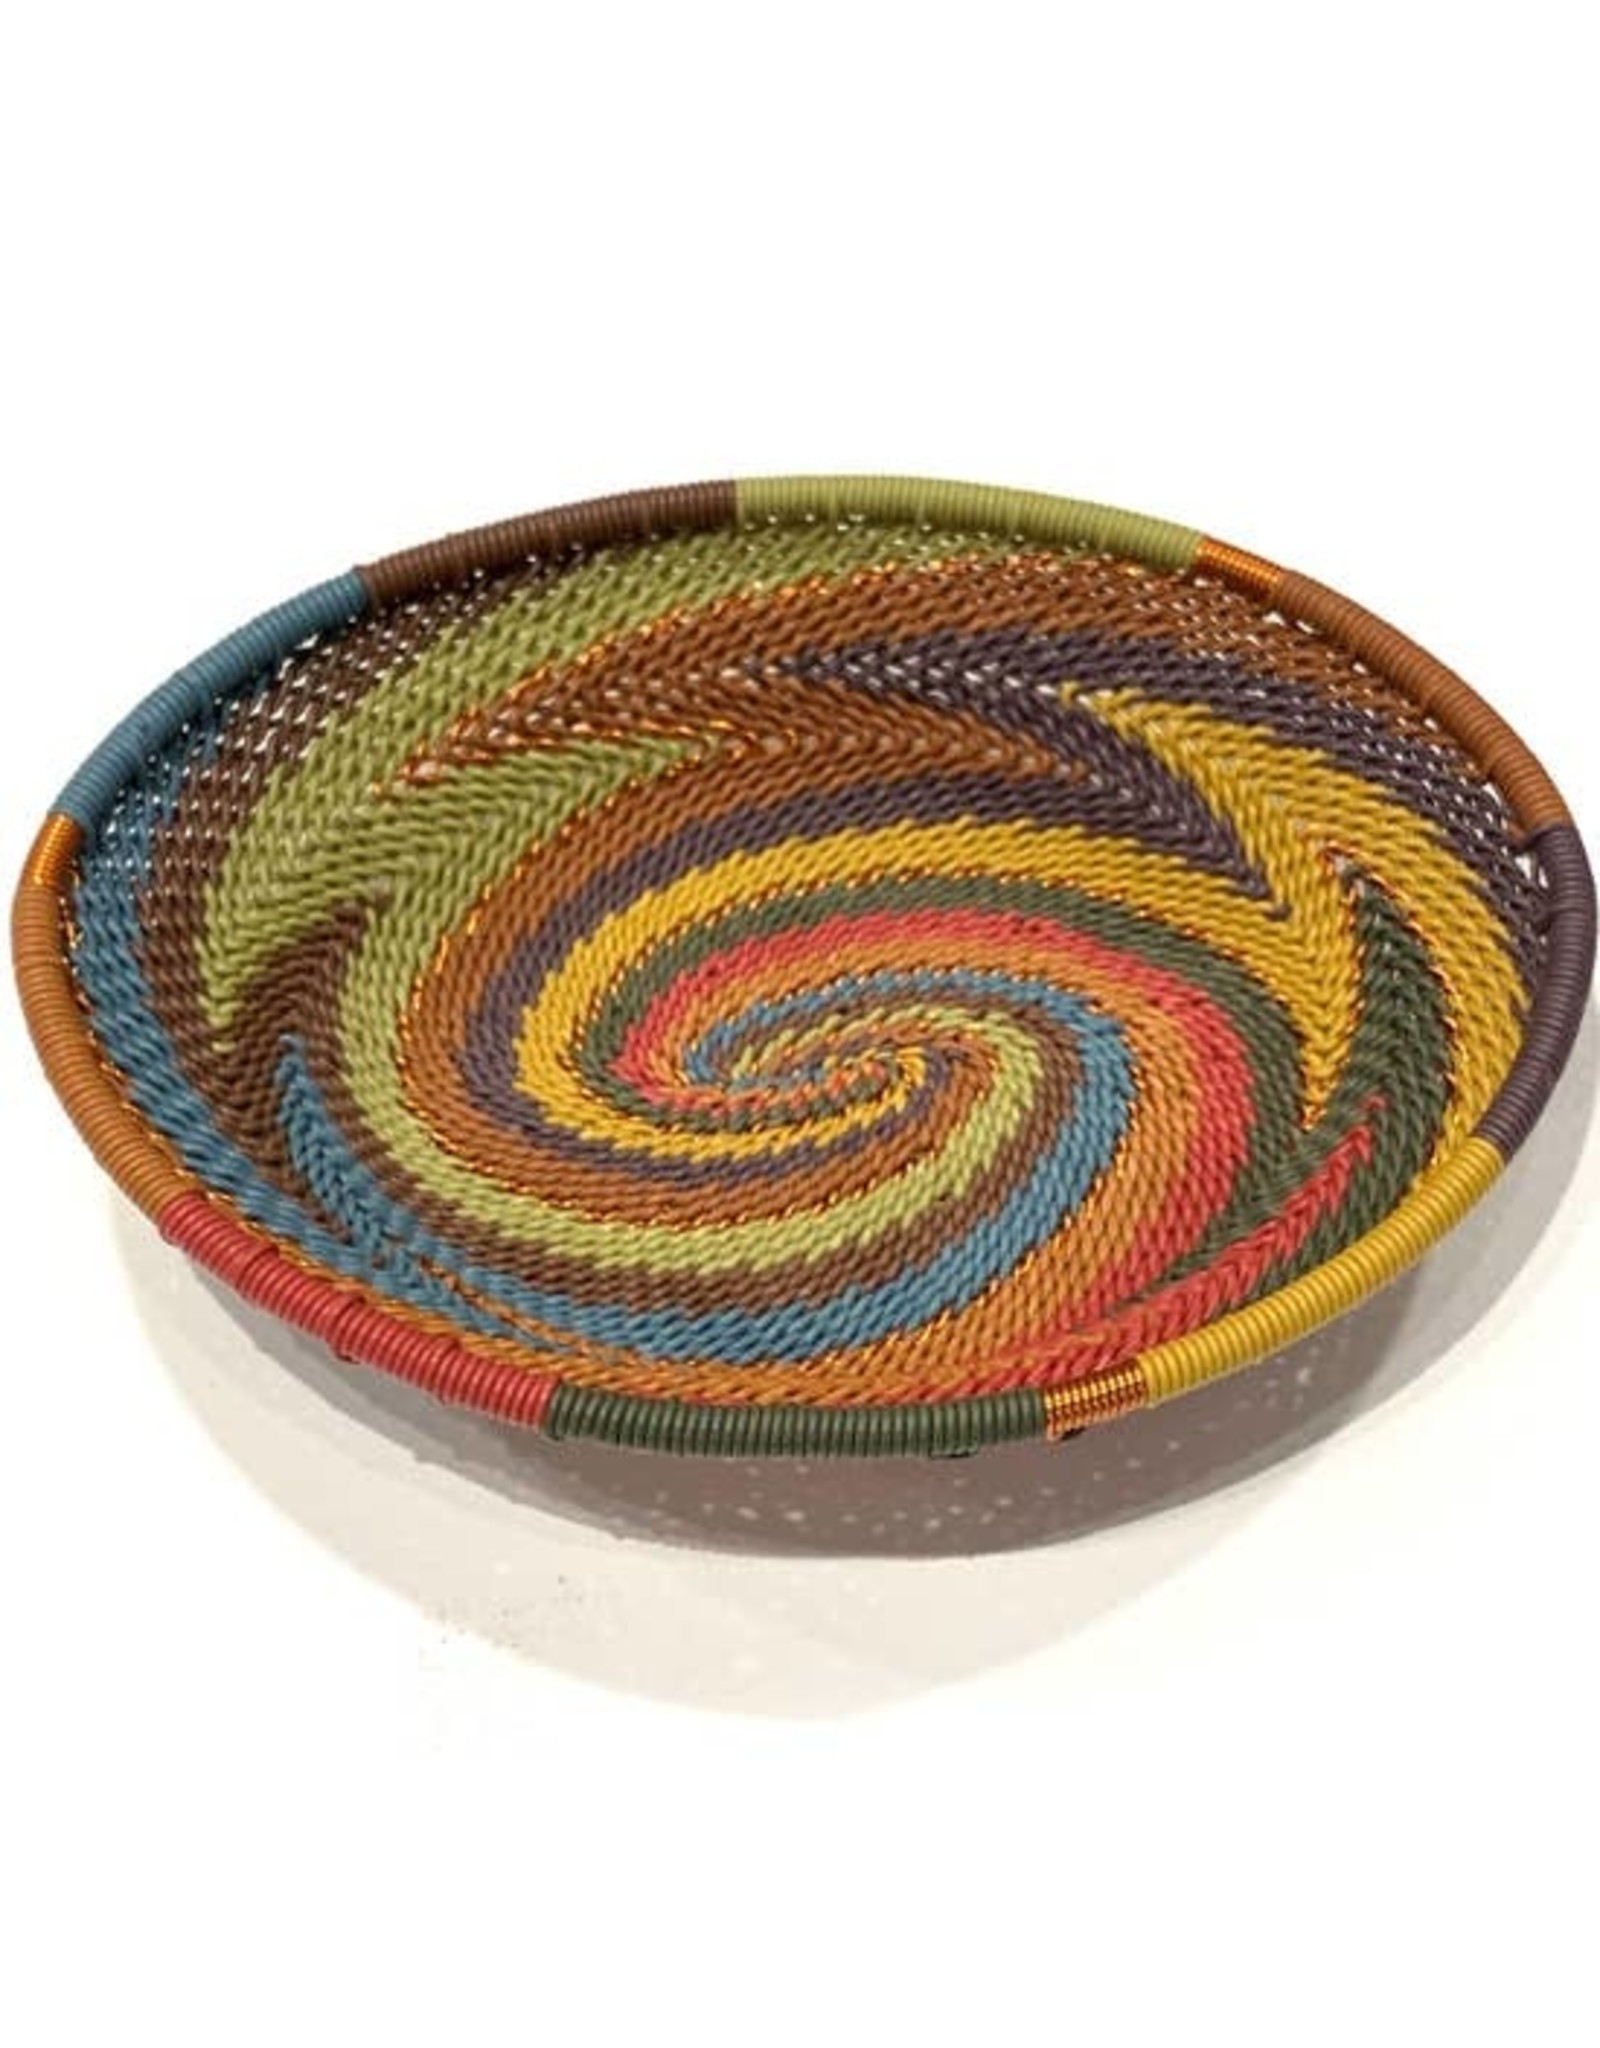 Small Oval Telephone Wire Bowl, Painted Desert